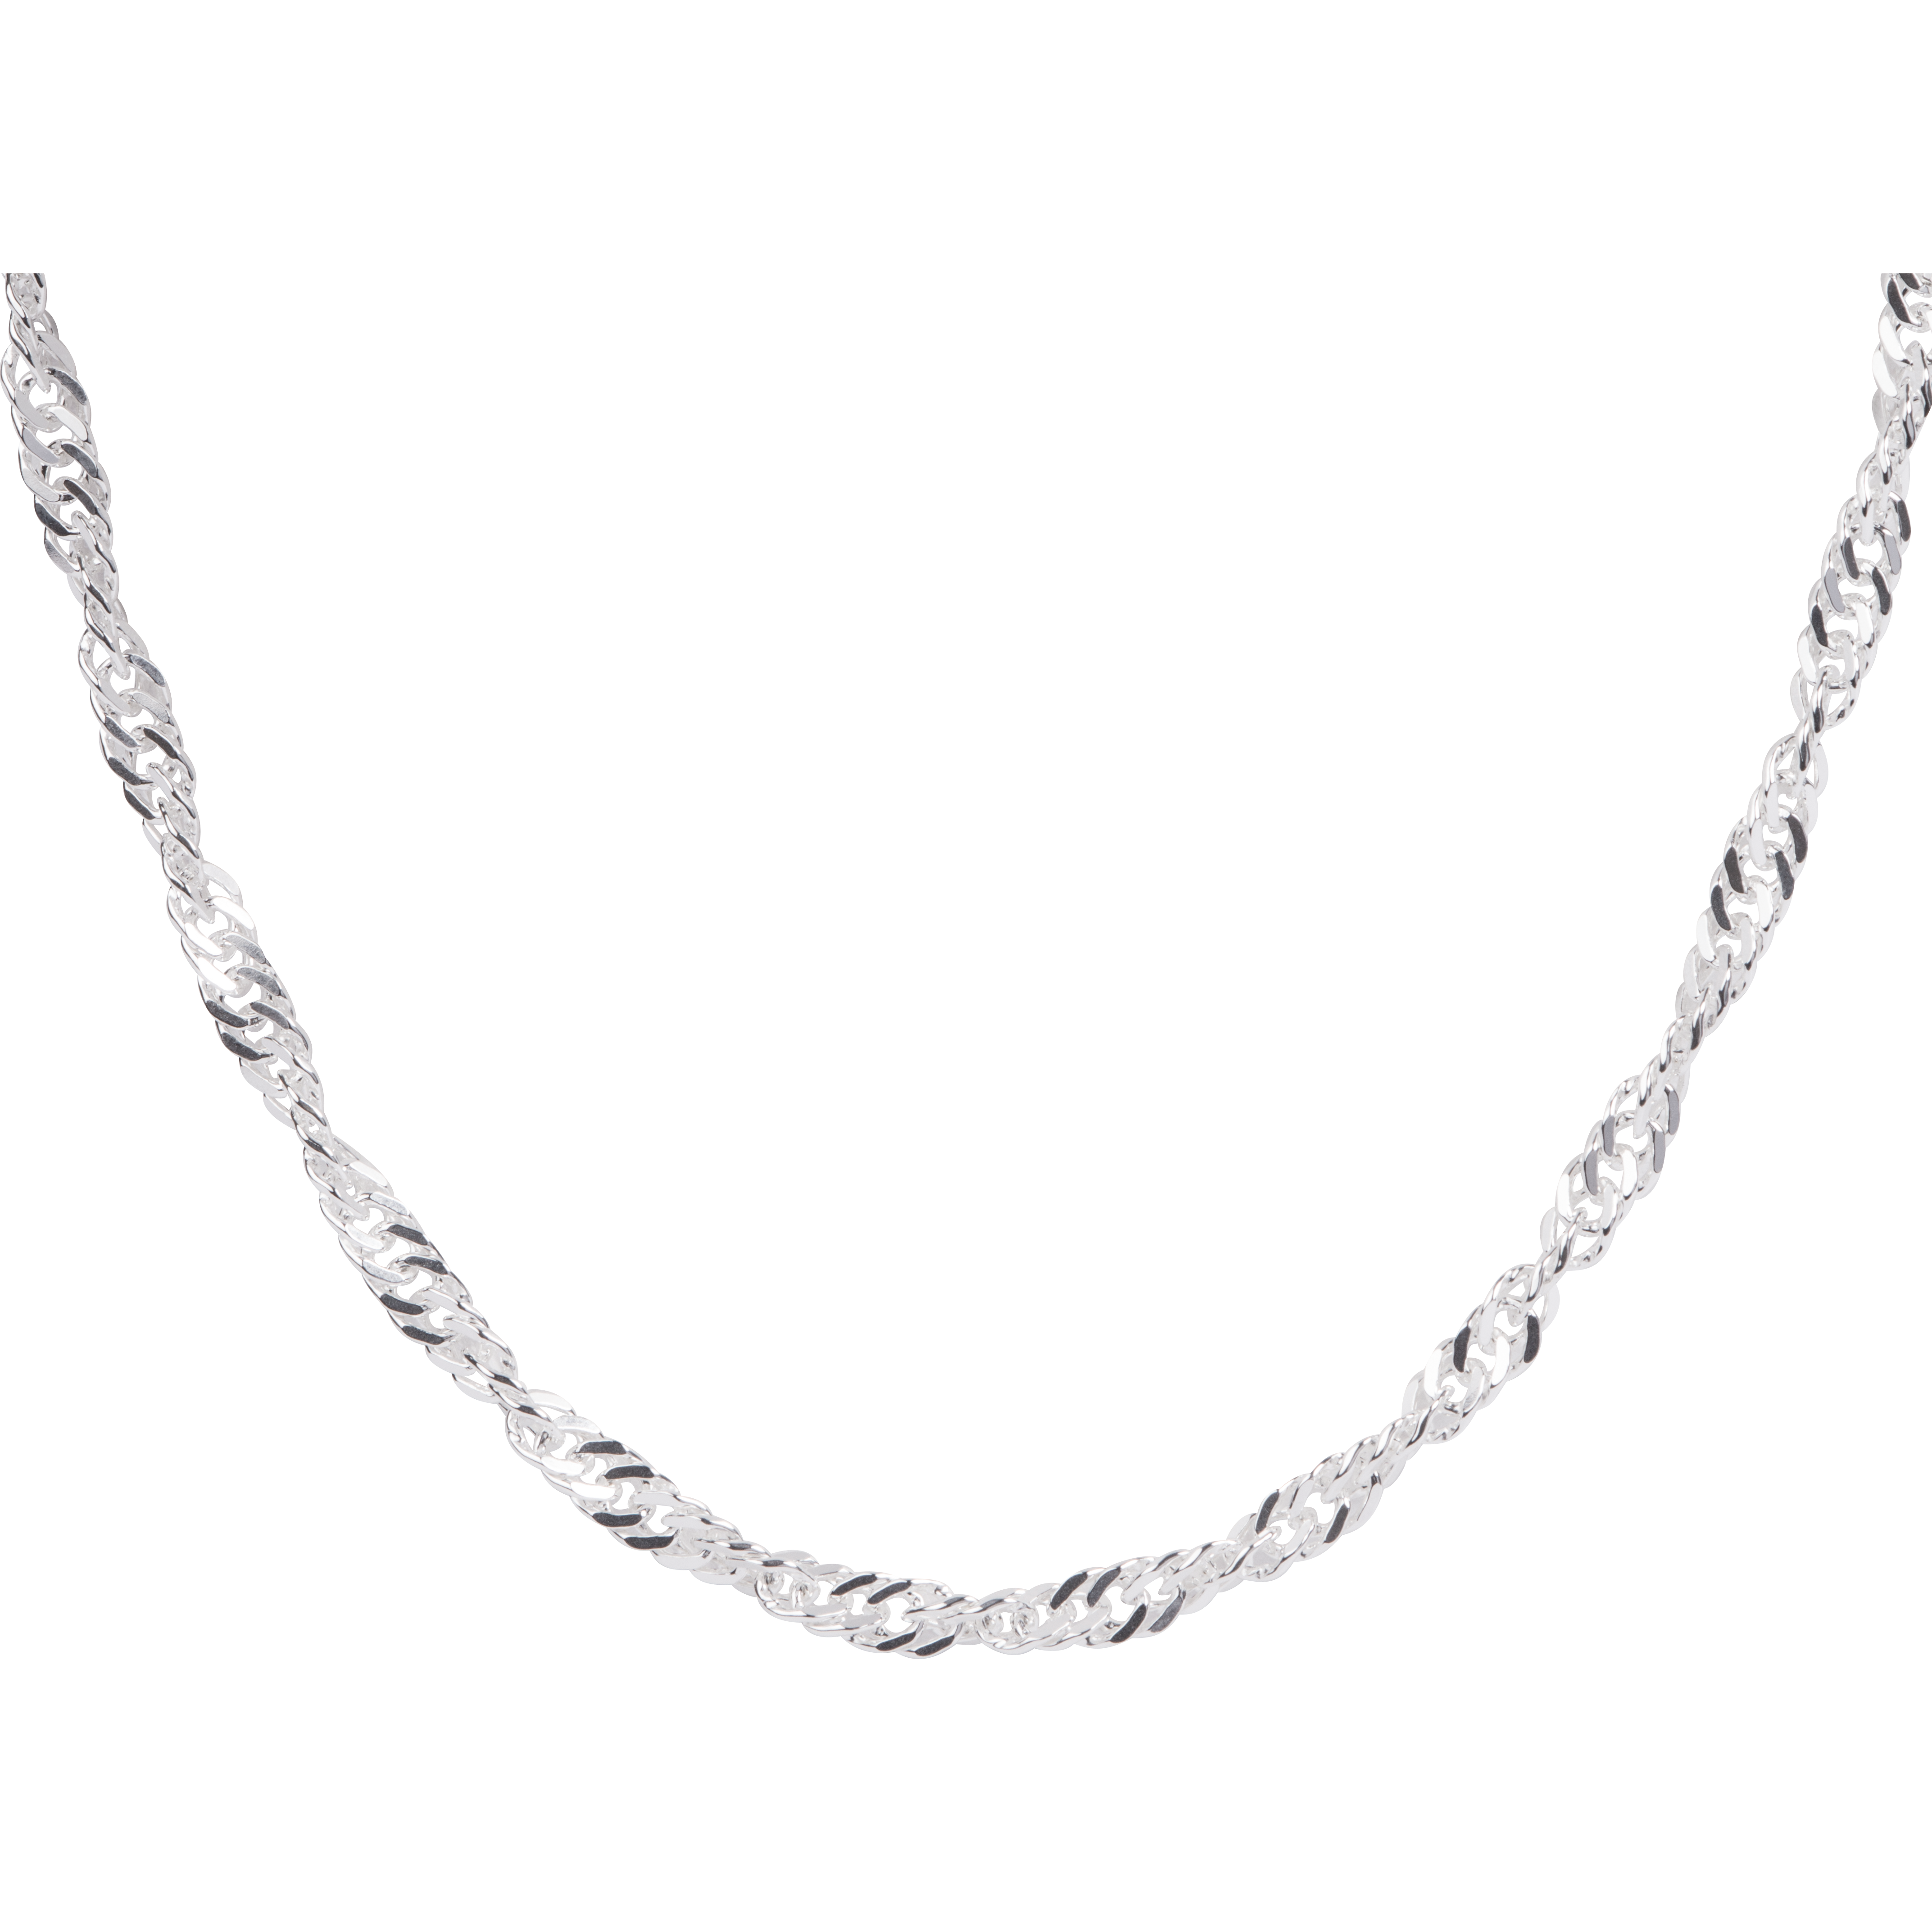 STERLING SILVER SINGAPORE CHAIN.